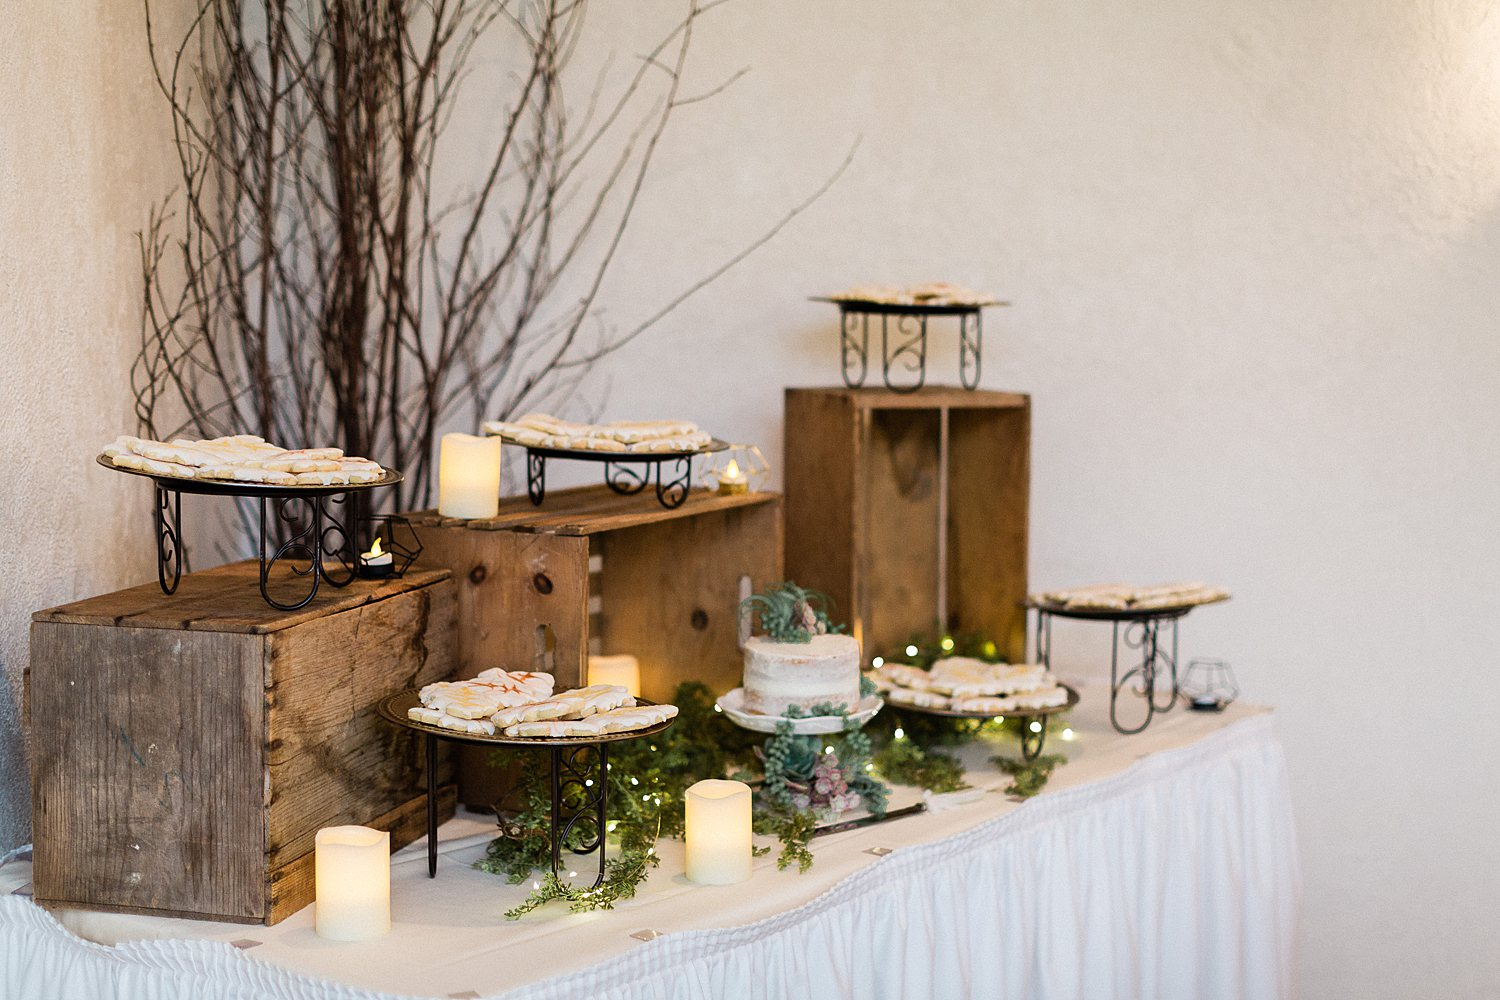 North_Central_Wisconsin_Event_Wedding_Venues_Fall_Weddings_The_Bailiwick_Venue_James-Stokes-Photography056.jpg